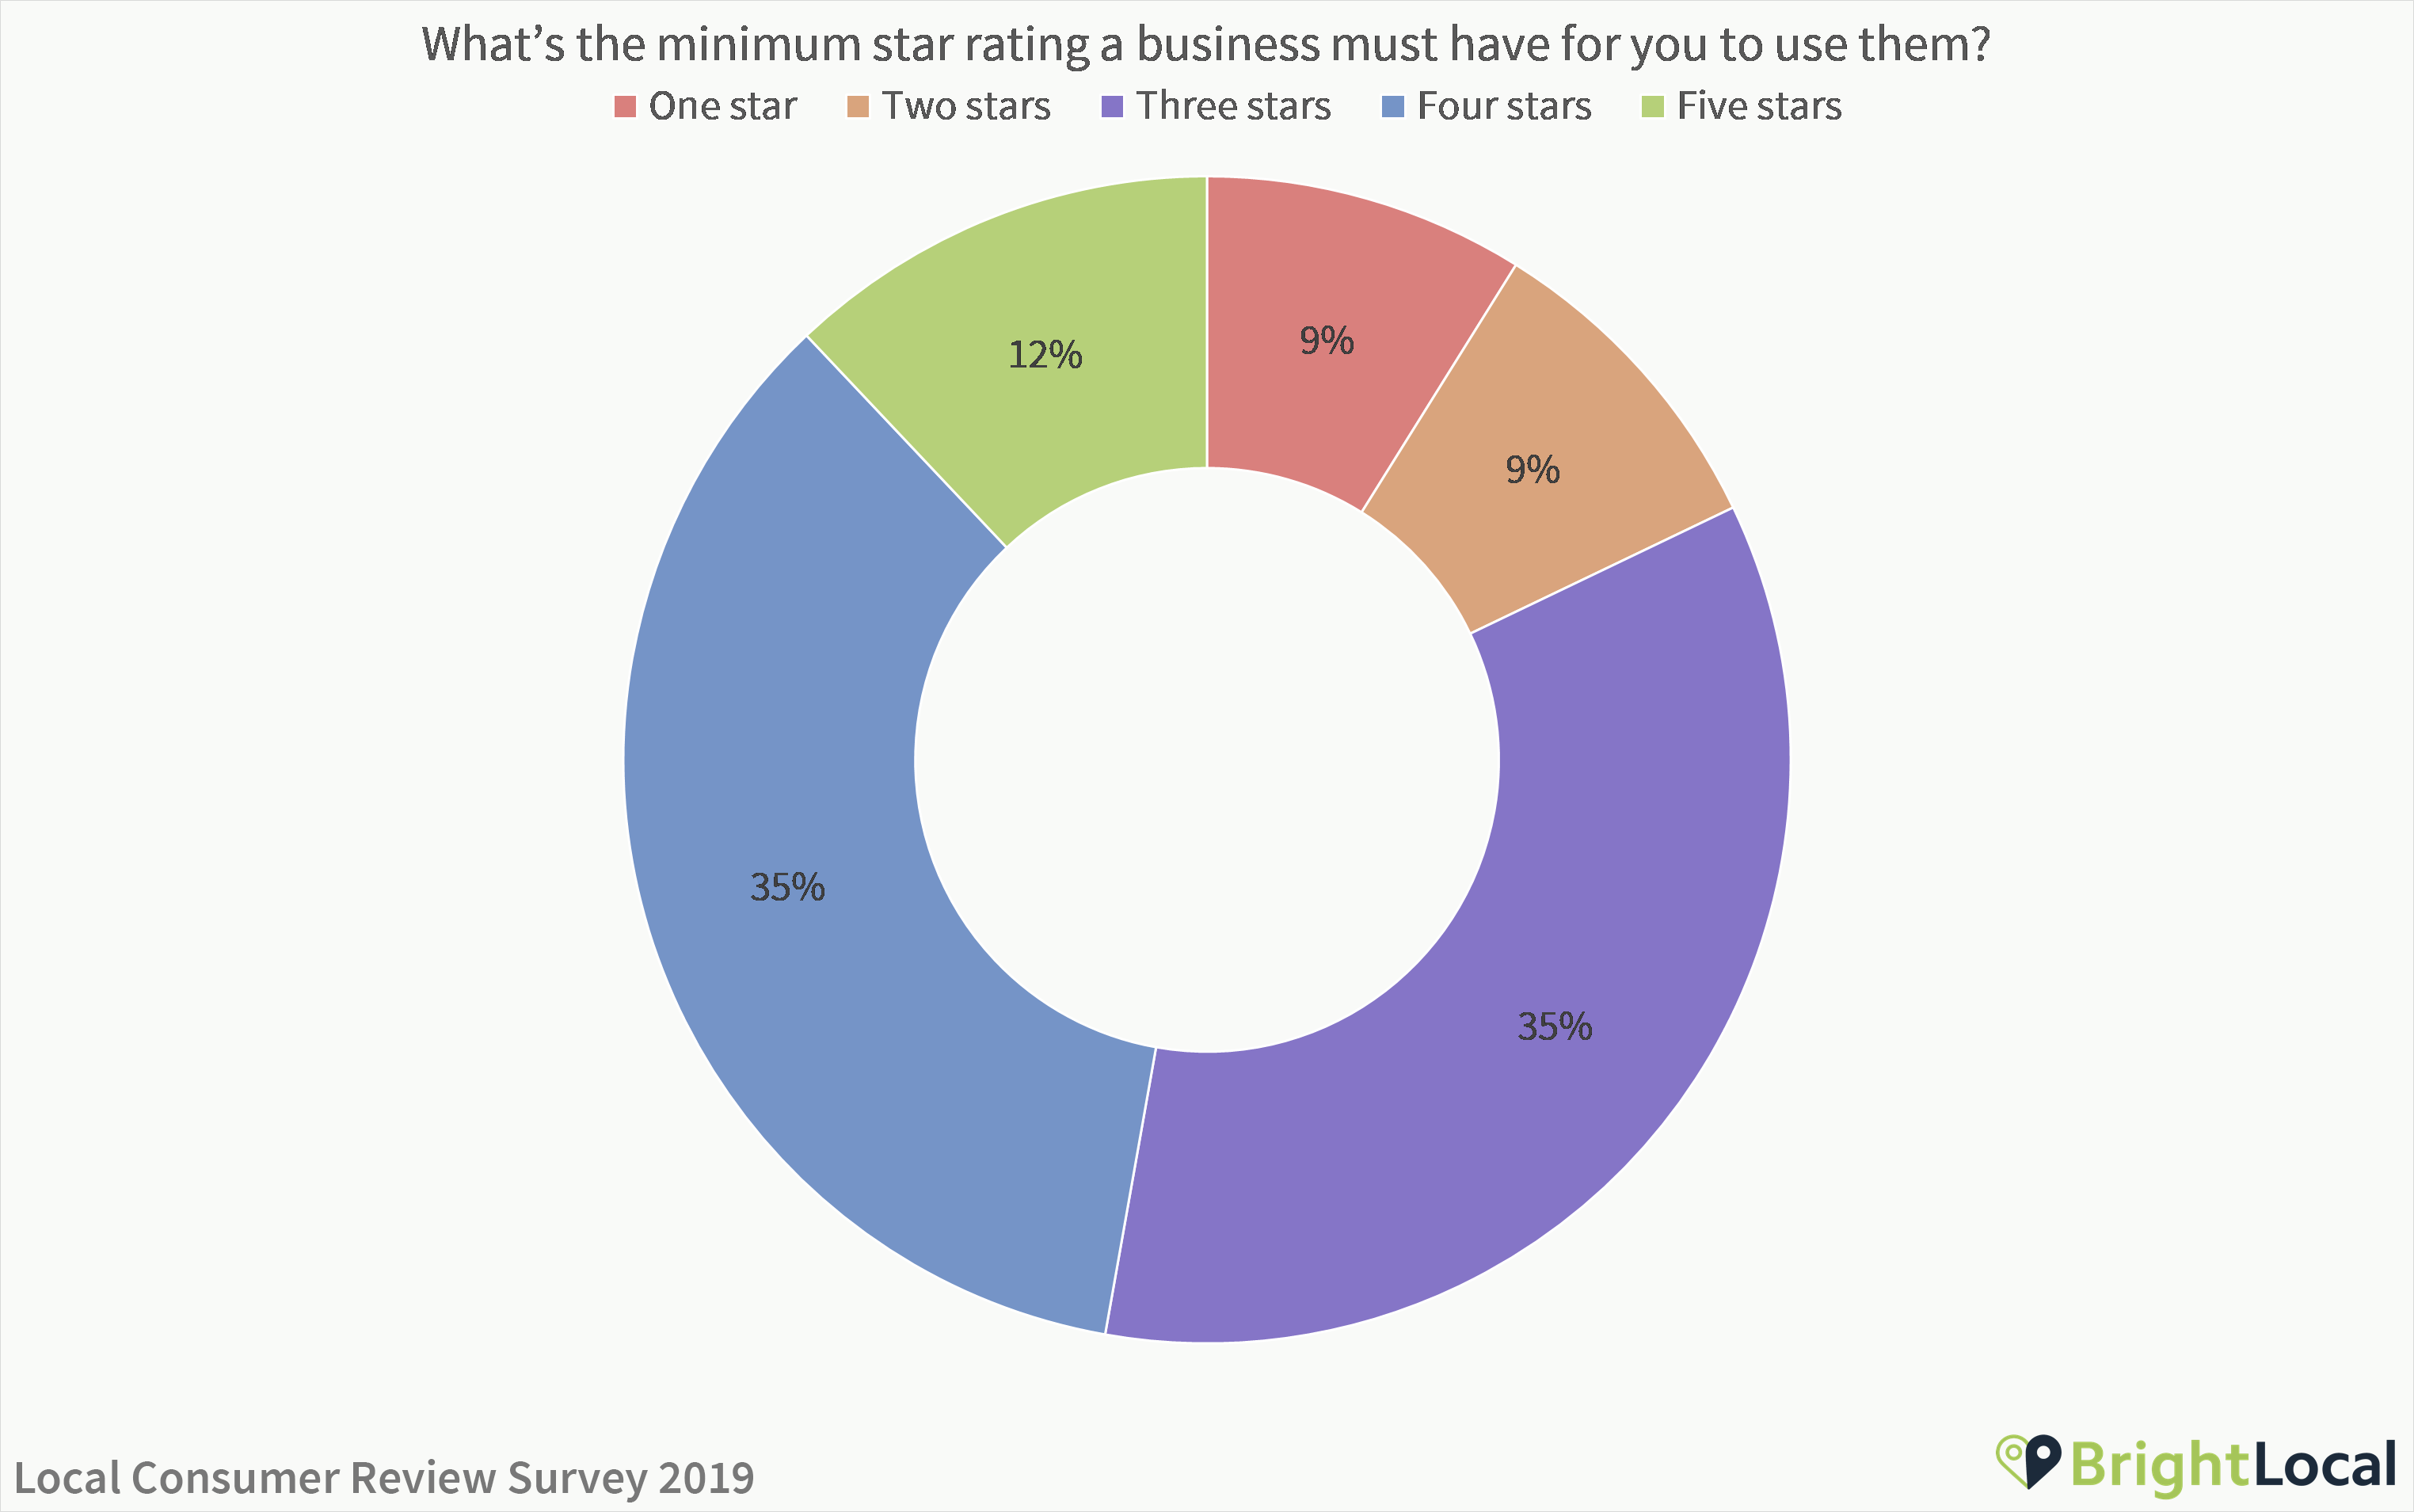 What star rating does a business need to have